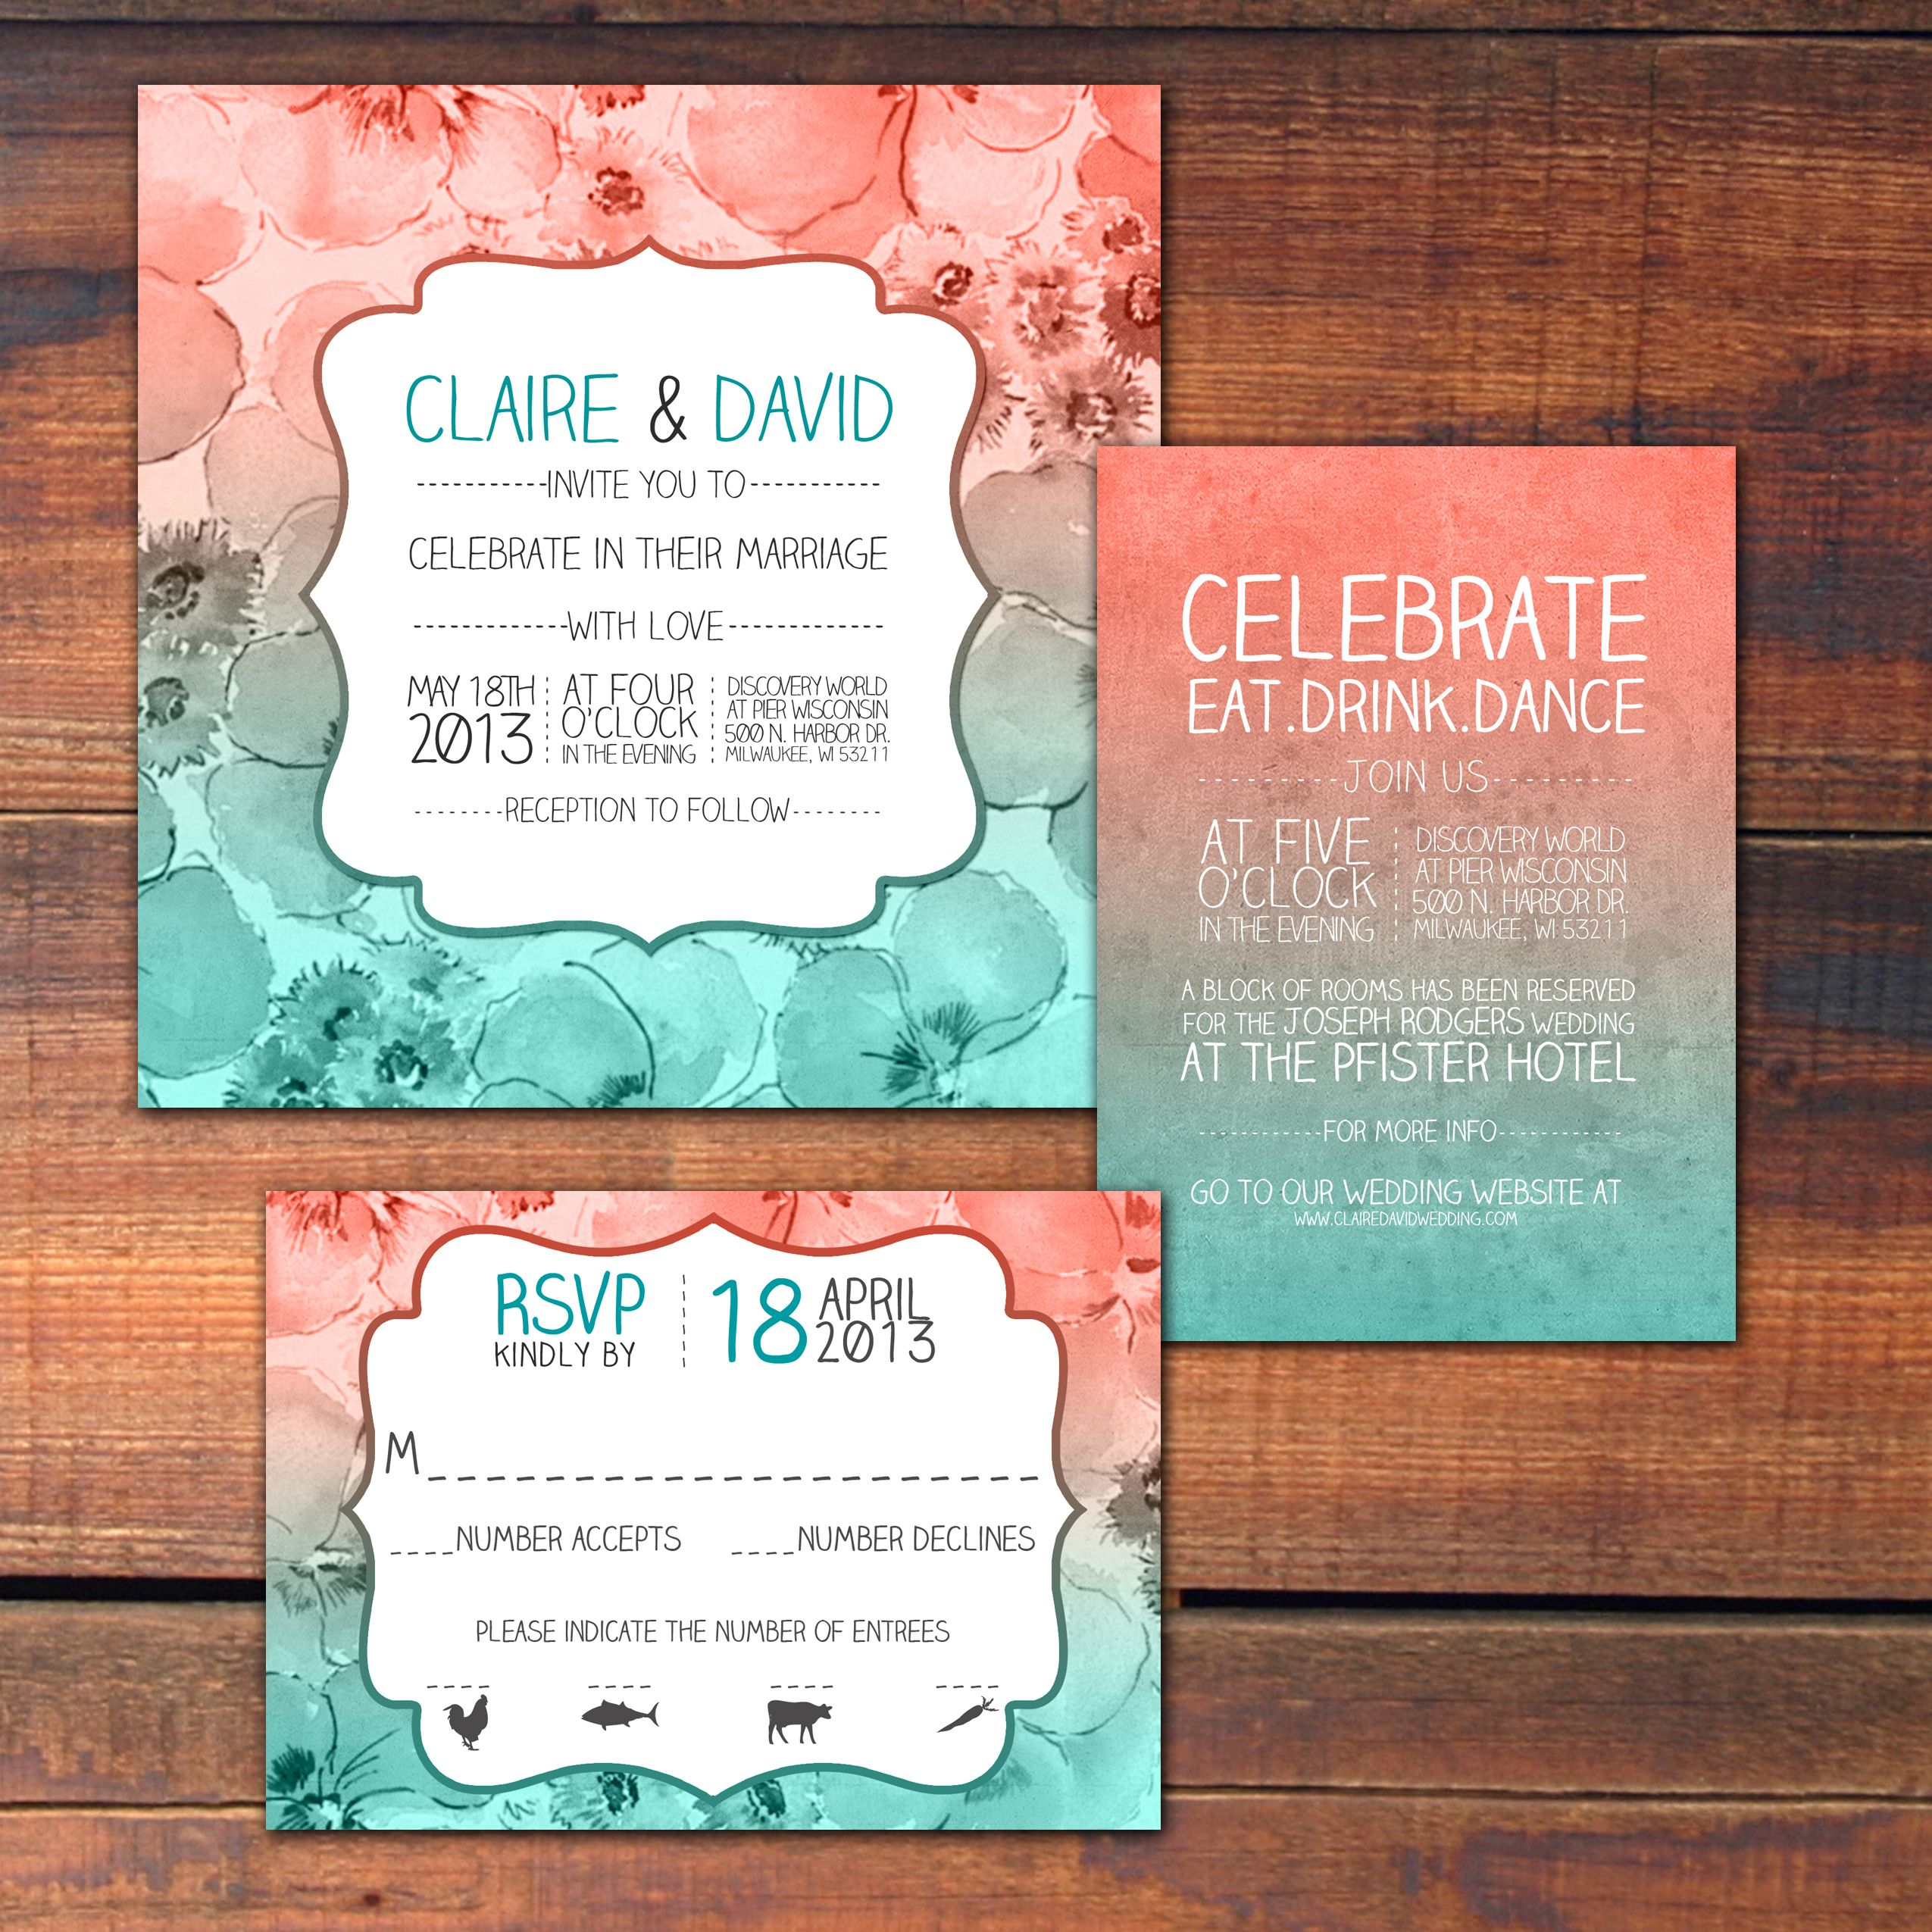 Coral Wedding Invitations: Coral And Teal Inspired Wedding Invitations By DCo